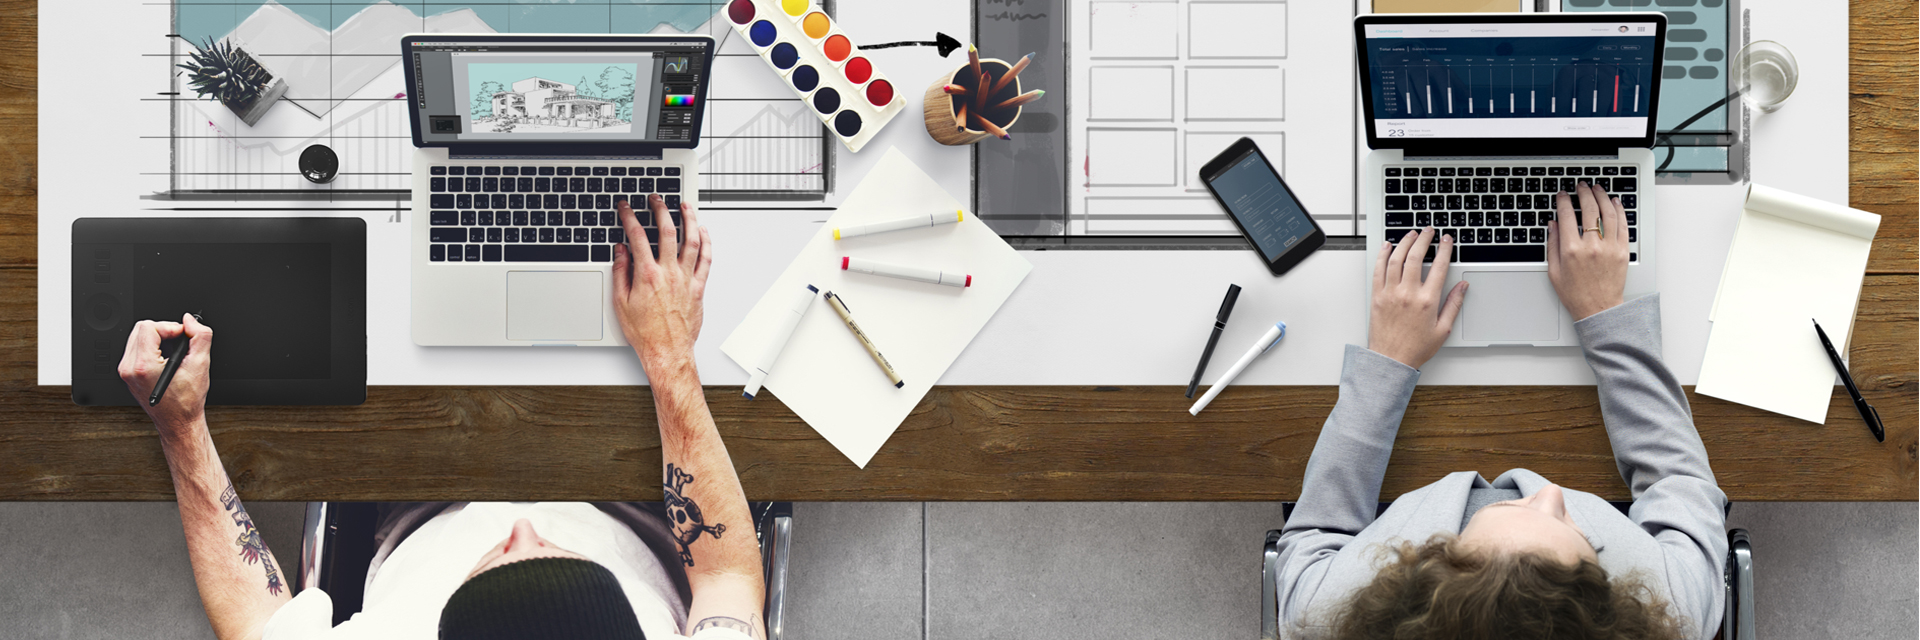 How to start your own web design company?